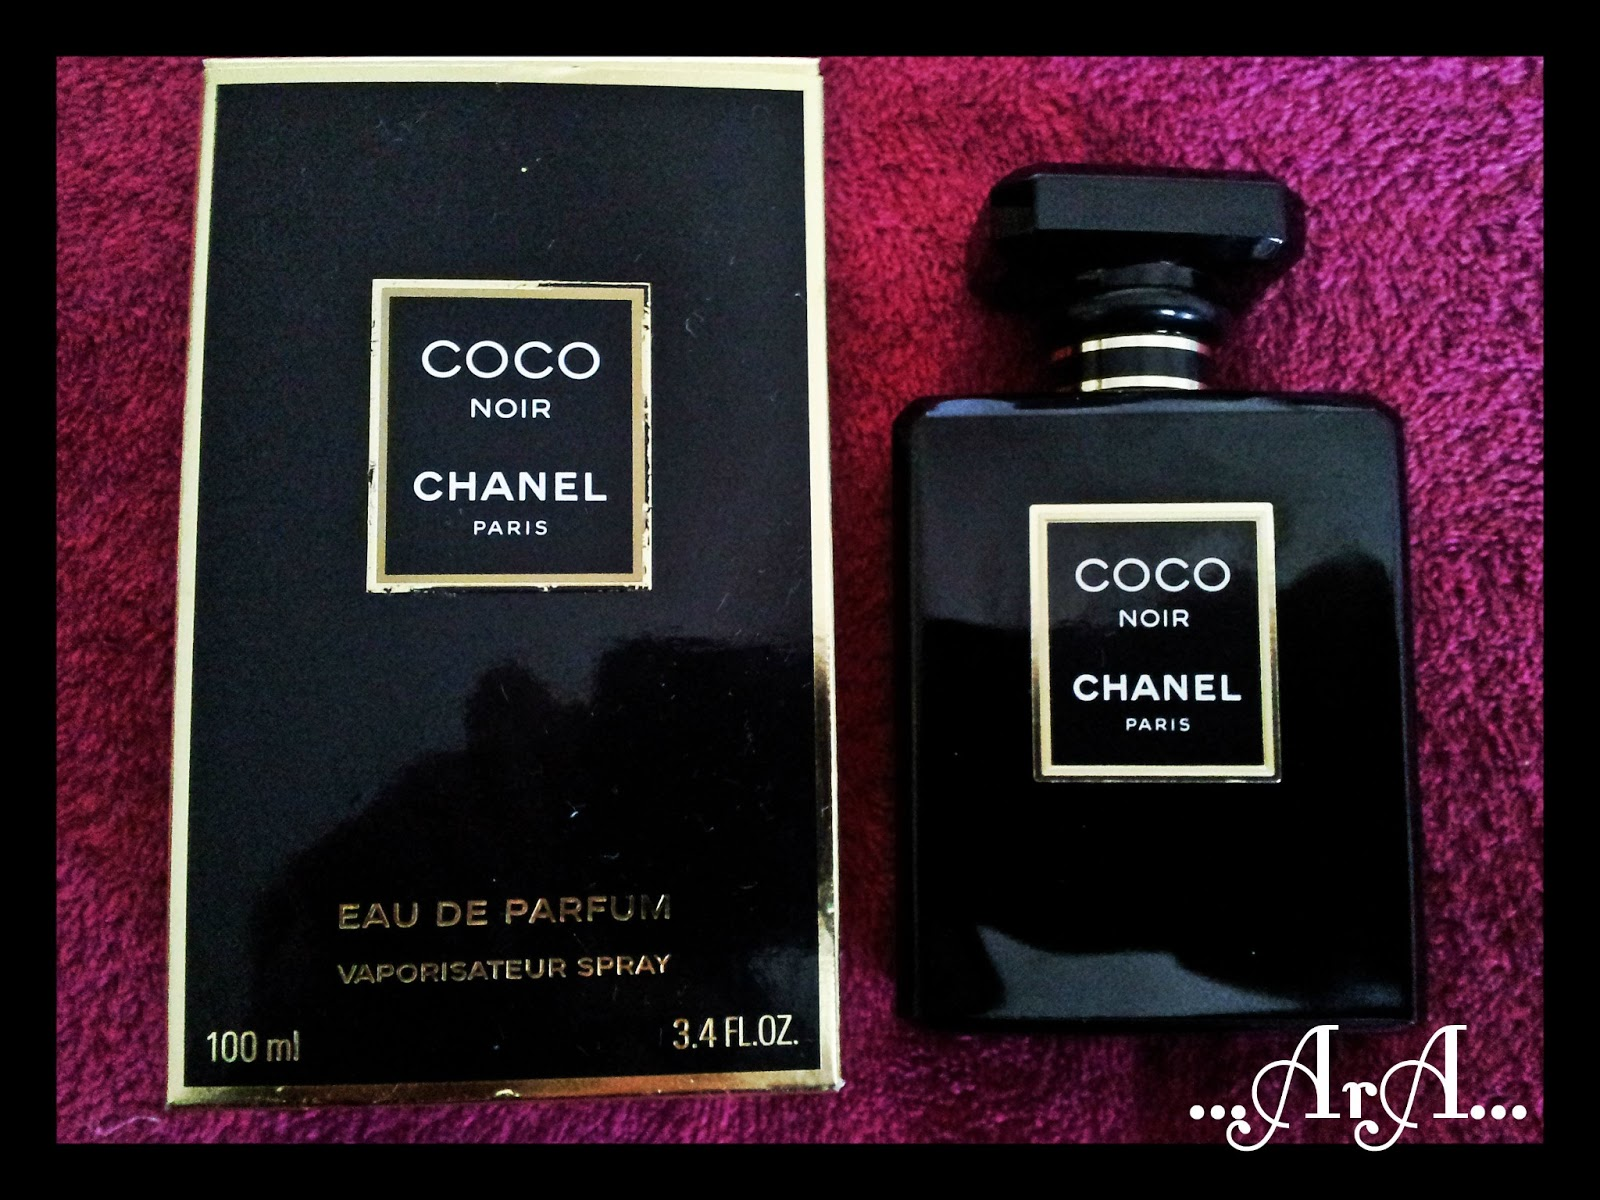 ara awaiting riches affluence style fashion beauty lifestyle blog chanel coco noir. Black Bedroom Furniture Sets. Home Design Ideas